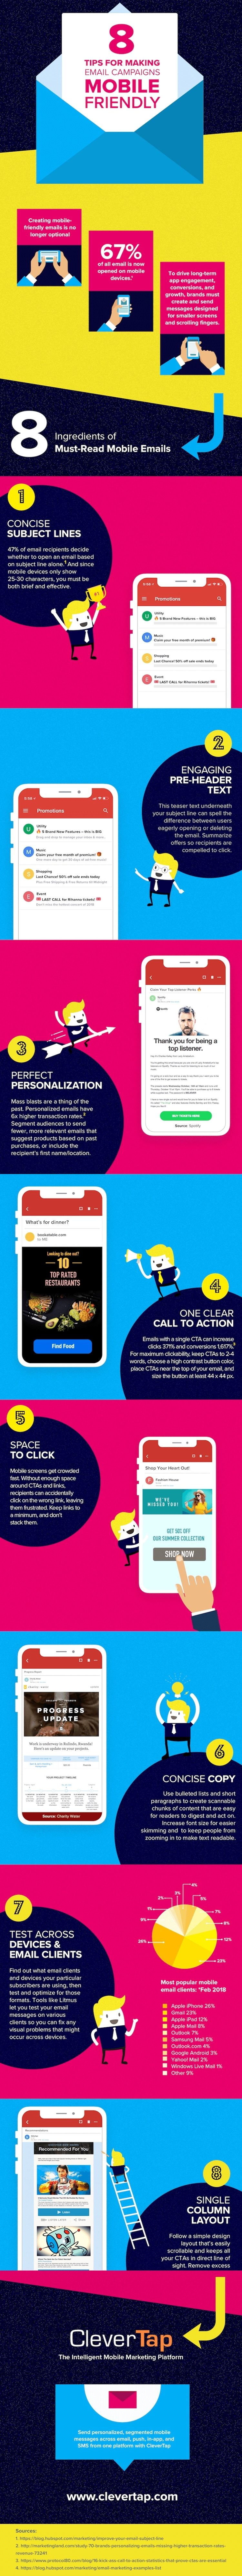 Email Campaigns Mobile-Friendly Infographic